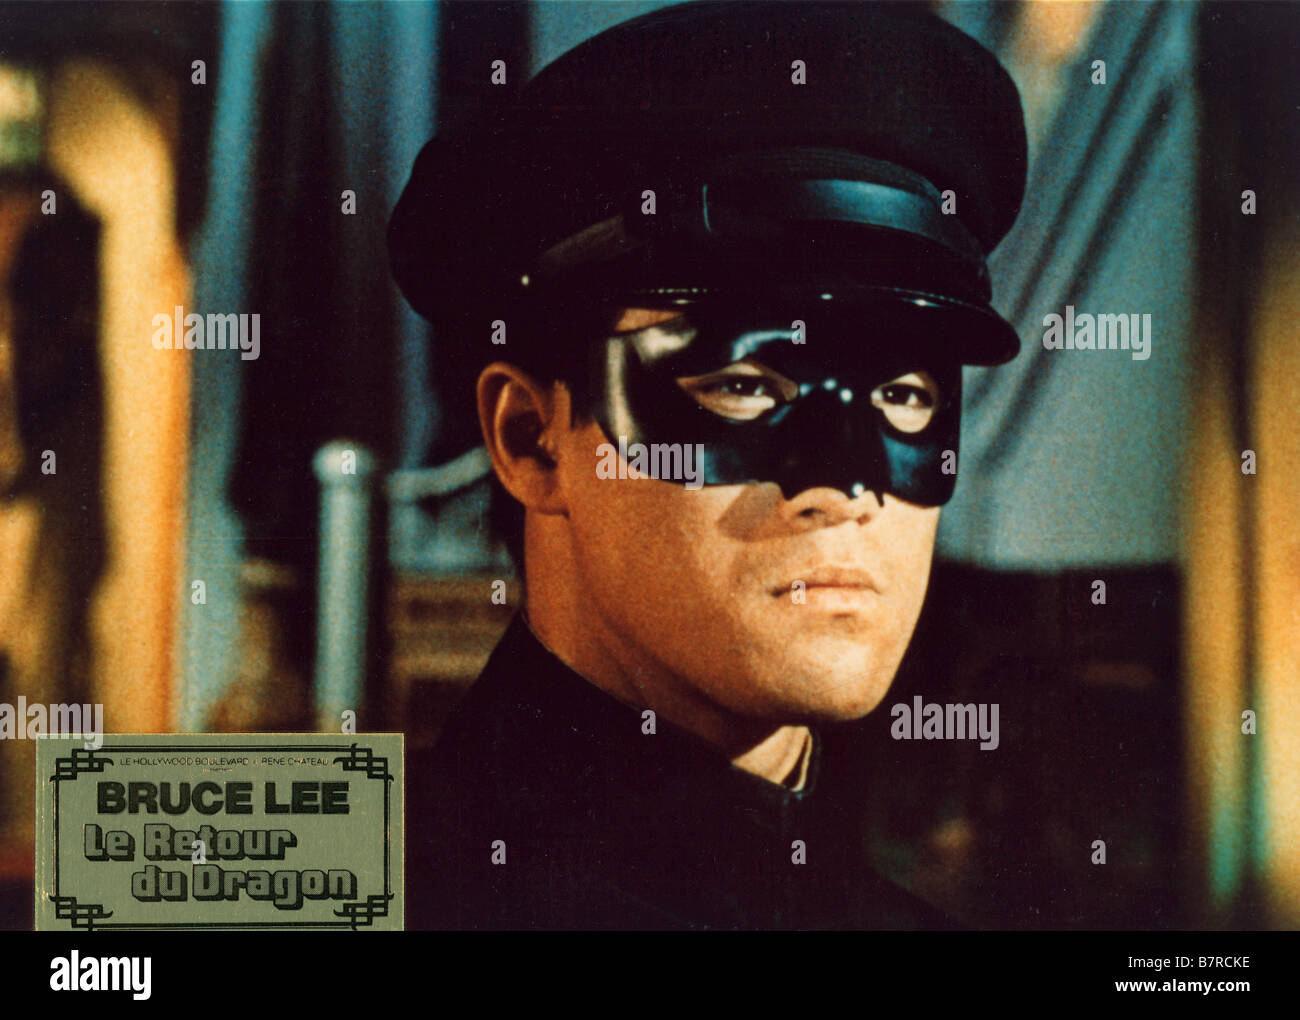 The Green hornet TV Series 1966 - 1967 USA Created by George W. Trendle Bruce Lee - Stock Image